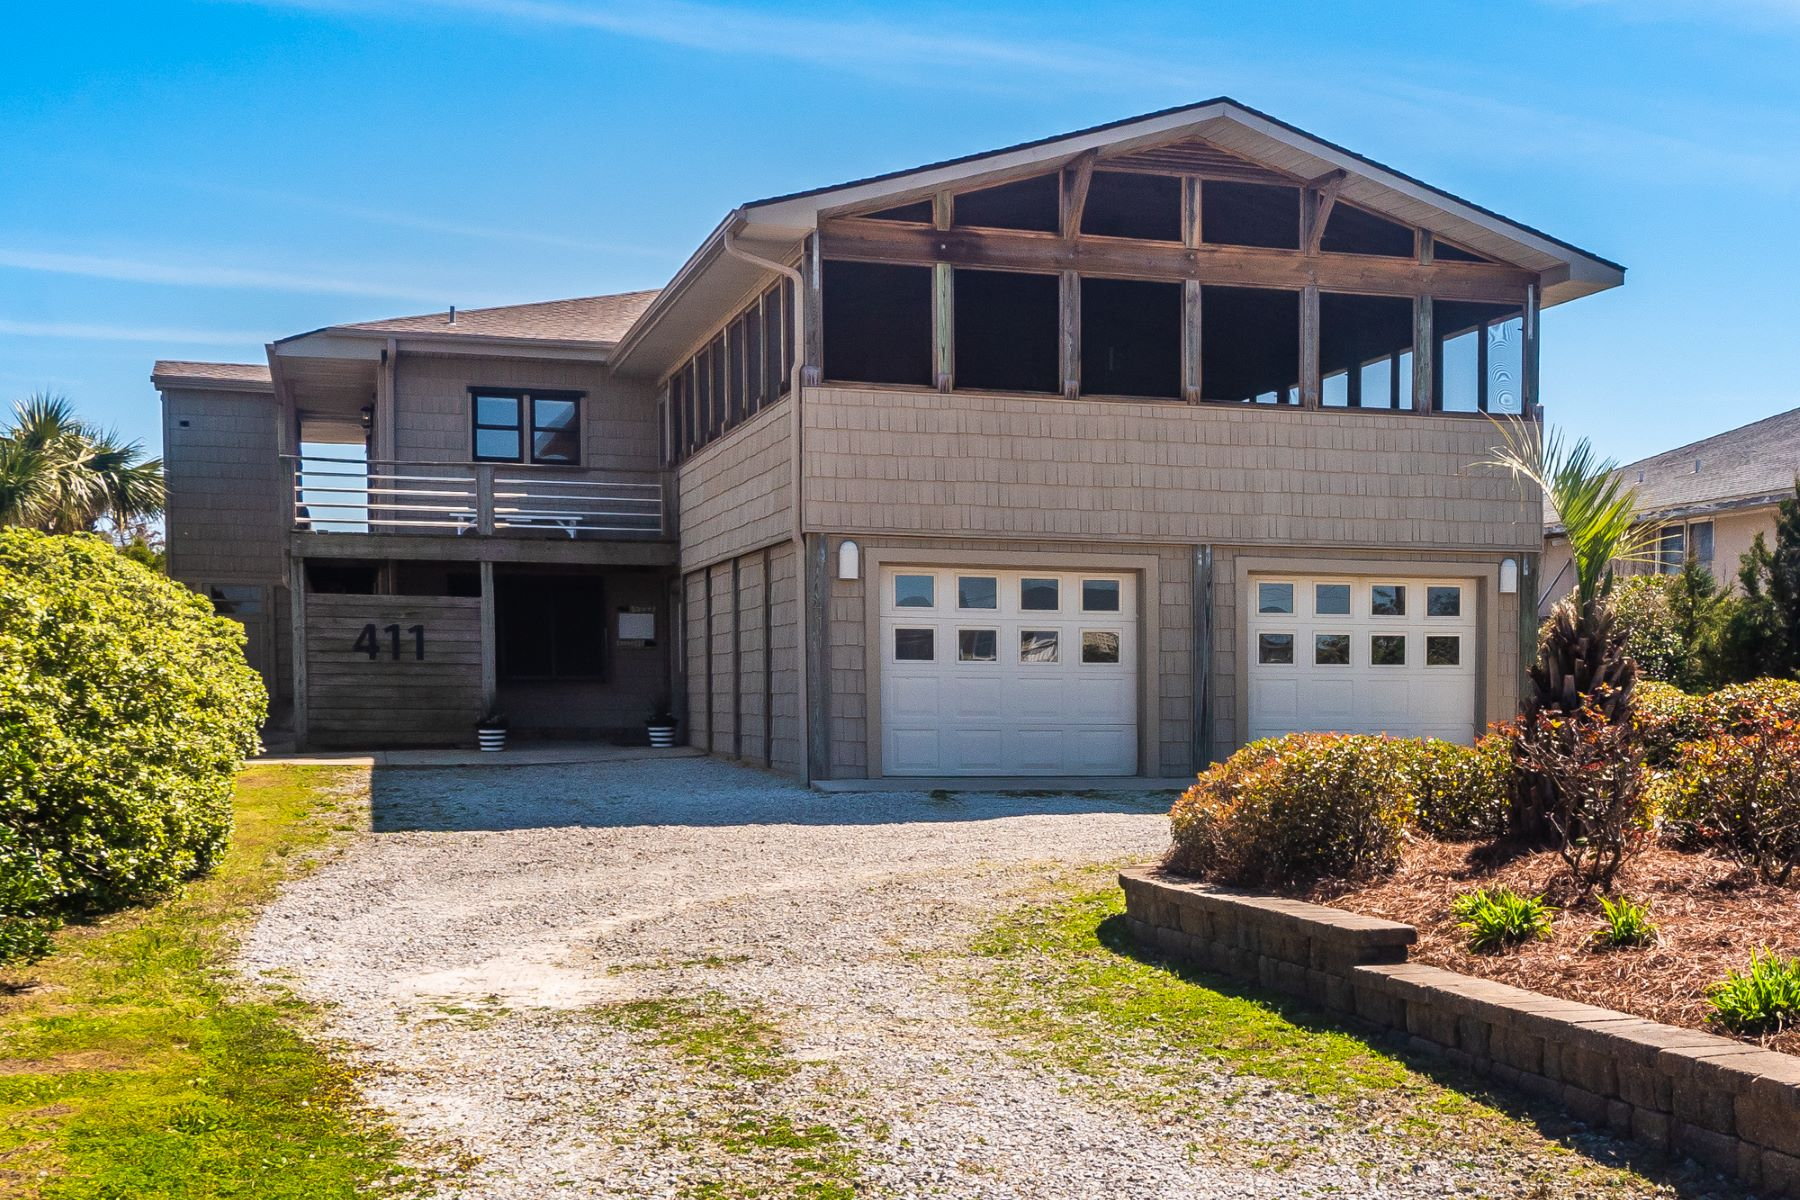 Single Family Home for Active at Meticulously Maintained Vintage Cottage 411 S Anderson Blvd Topsail Beach, North Carolina 28445 United States